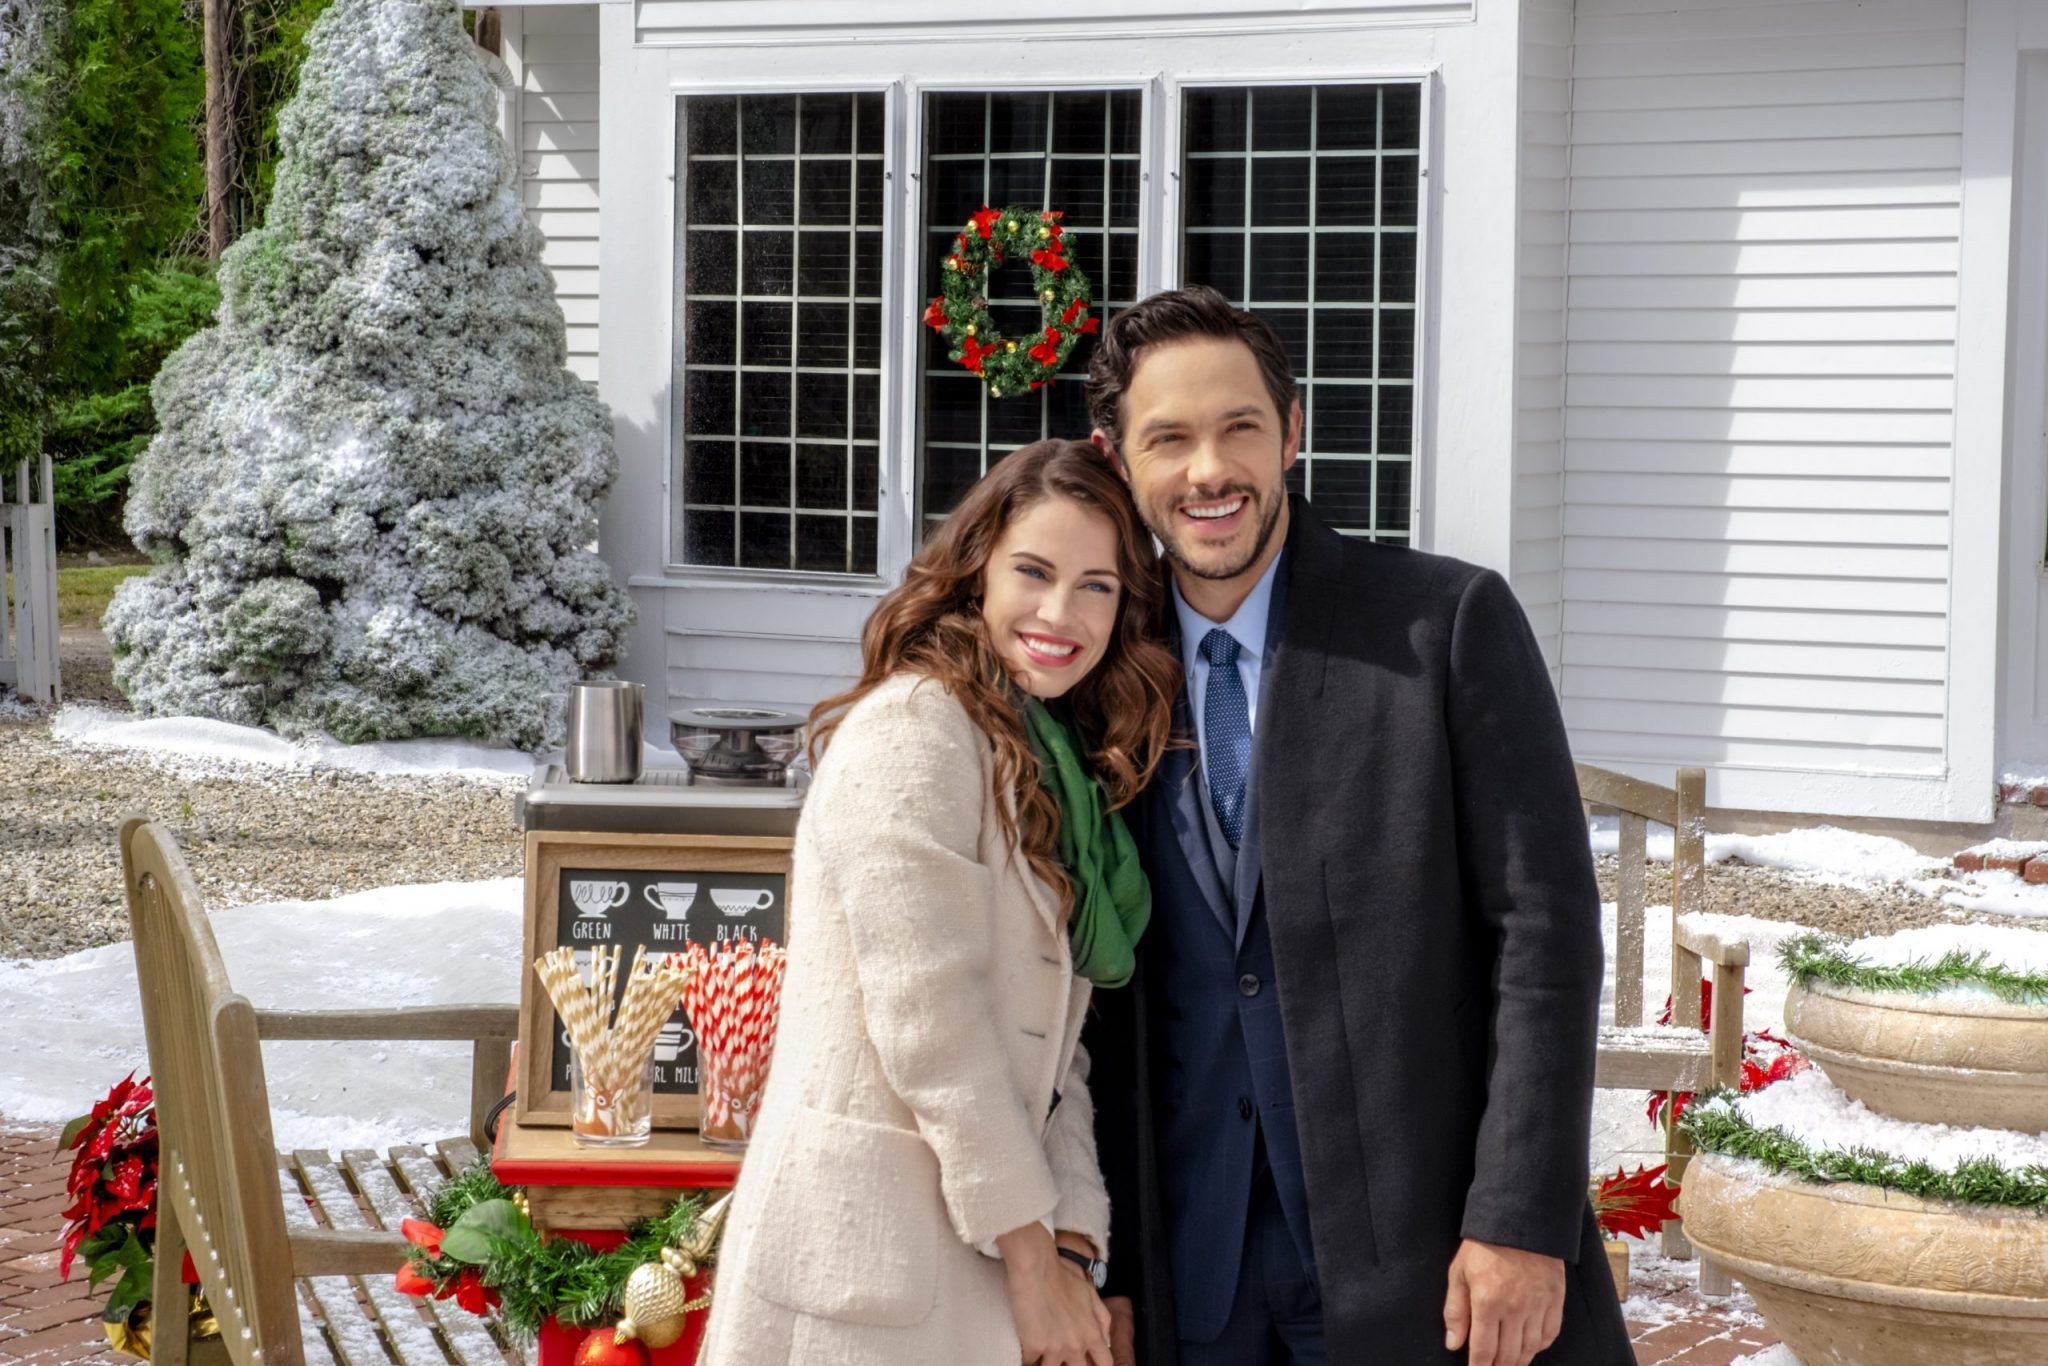 Hallmark Christmas, As Christmas approaches; a New York event planner is sent to a small town to organize a holiday festival. When she arrives, she finds a high-profile billionaire — who lacks holiday spirit — in the process of selling the charming estate she hoped to use as a venue. Before long, the unlikely pair begins falling for each other. But when complications arise, the couple parts ways and the billionaire moves forward with his plans to sell the estate. On the night before Christmas, the young event planner wishes for a Christmas miracle to save the estate and rekindle her holiday romance. Photo: Jessica Lowndes, Michael Rady Credit: ©2018 Crown Media United States LLC/Photographer: Robert Clark